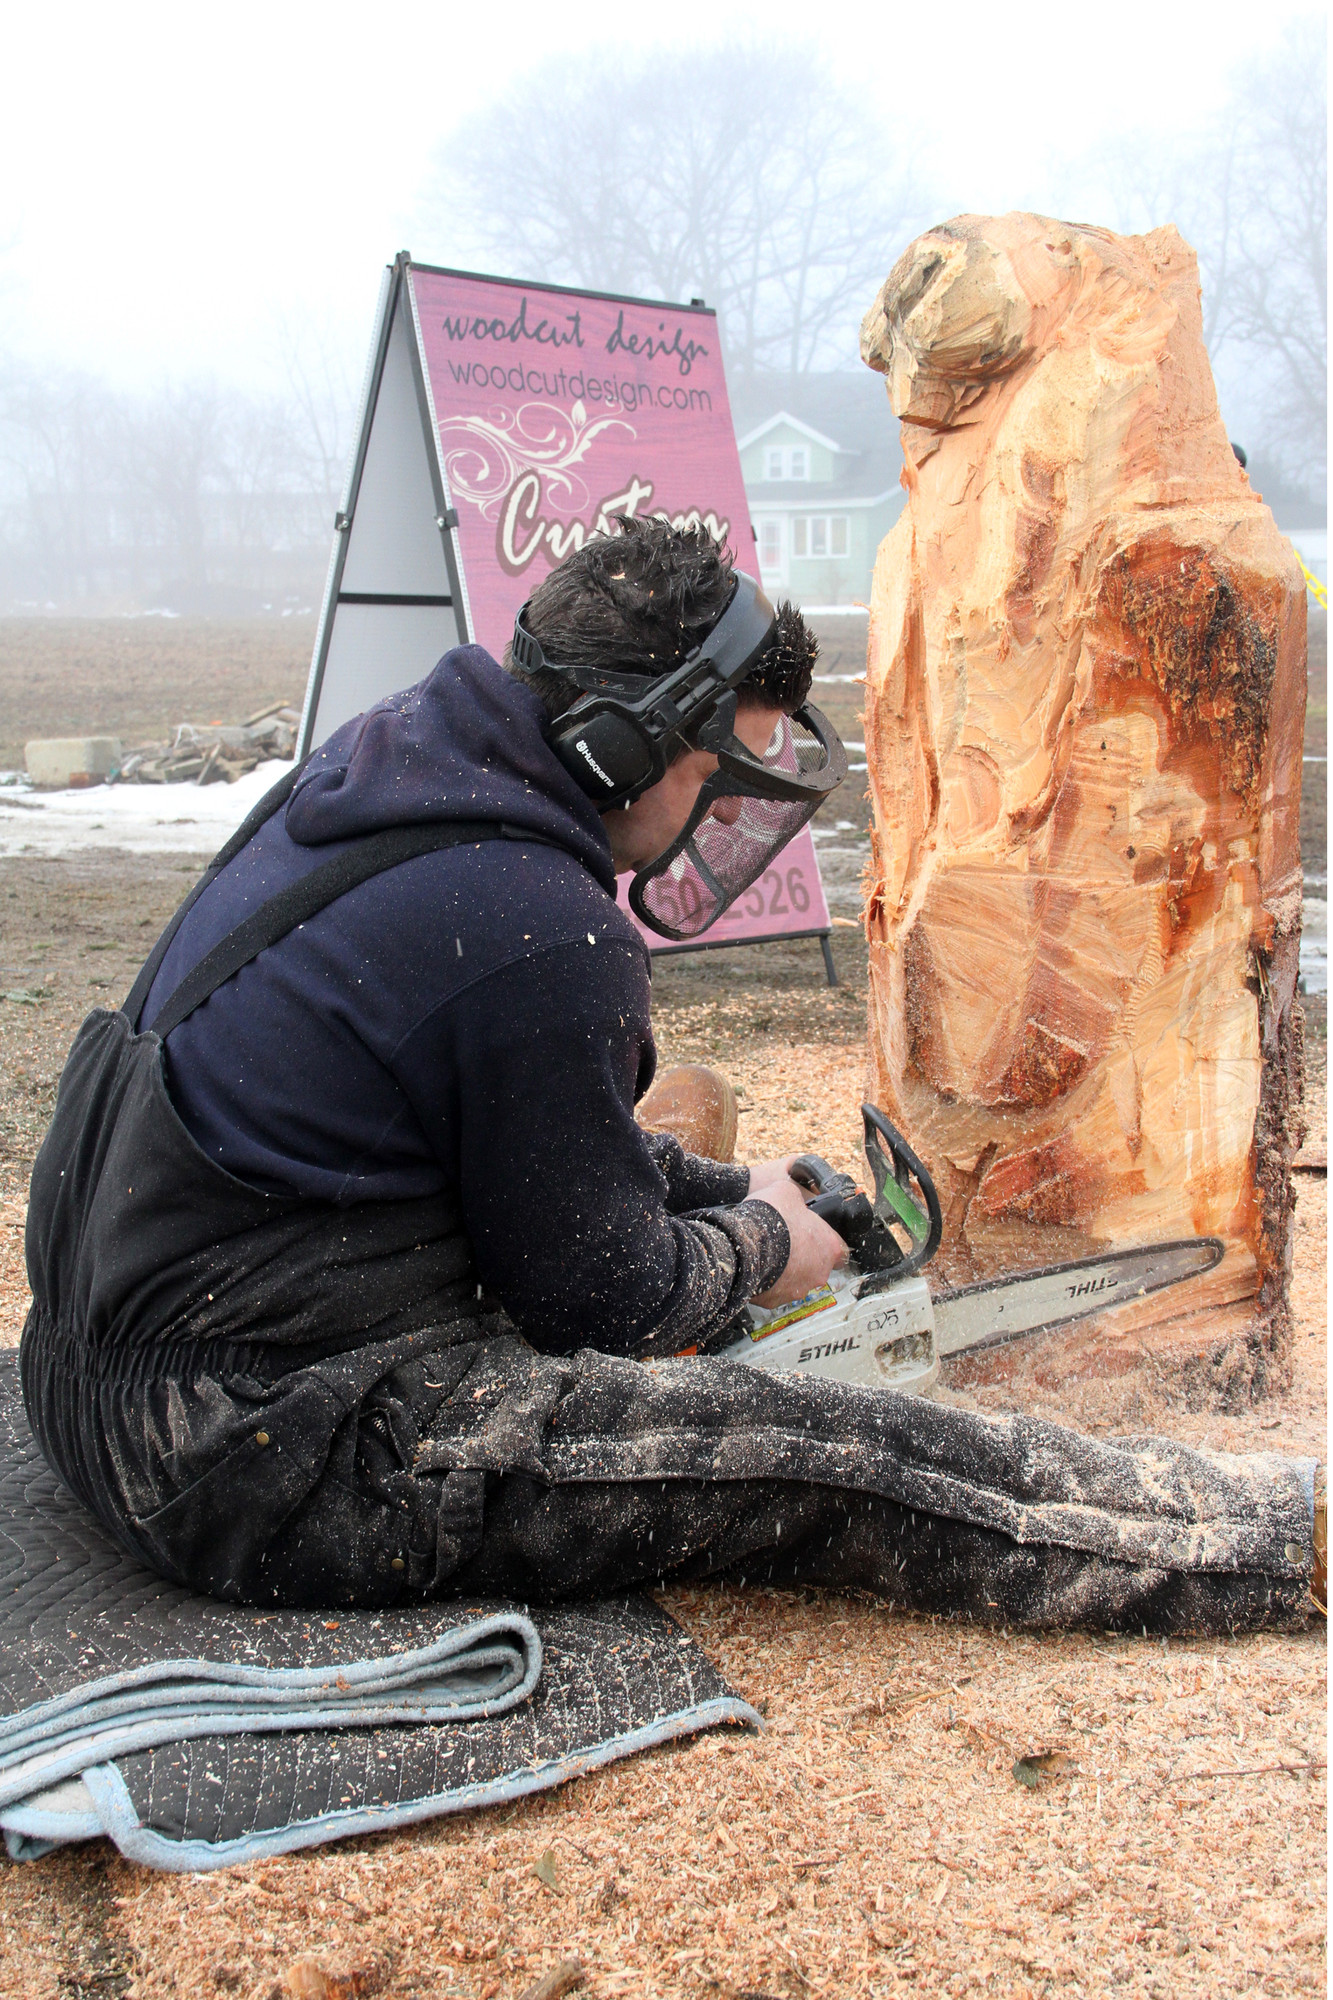 Woodcarver Craig Mastandrea worked his magic to create a new Mel sculpture at this year's event.